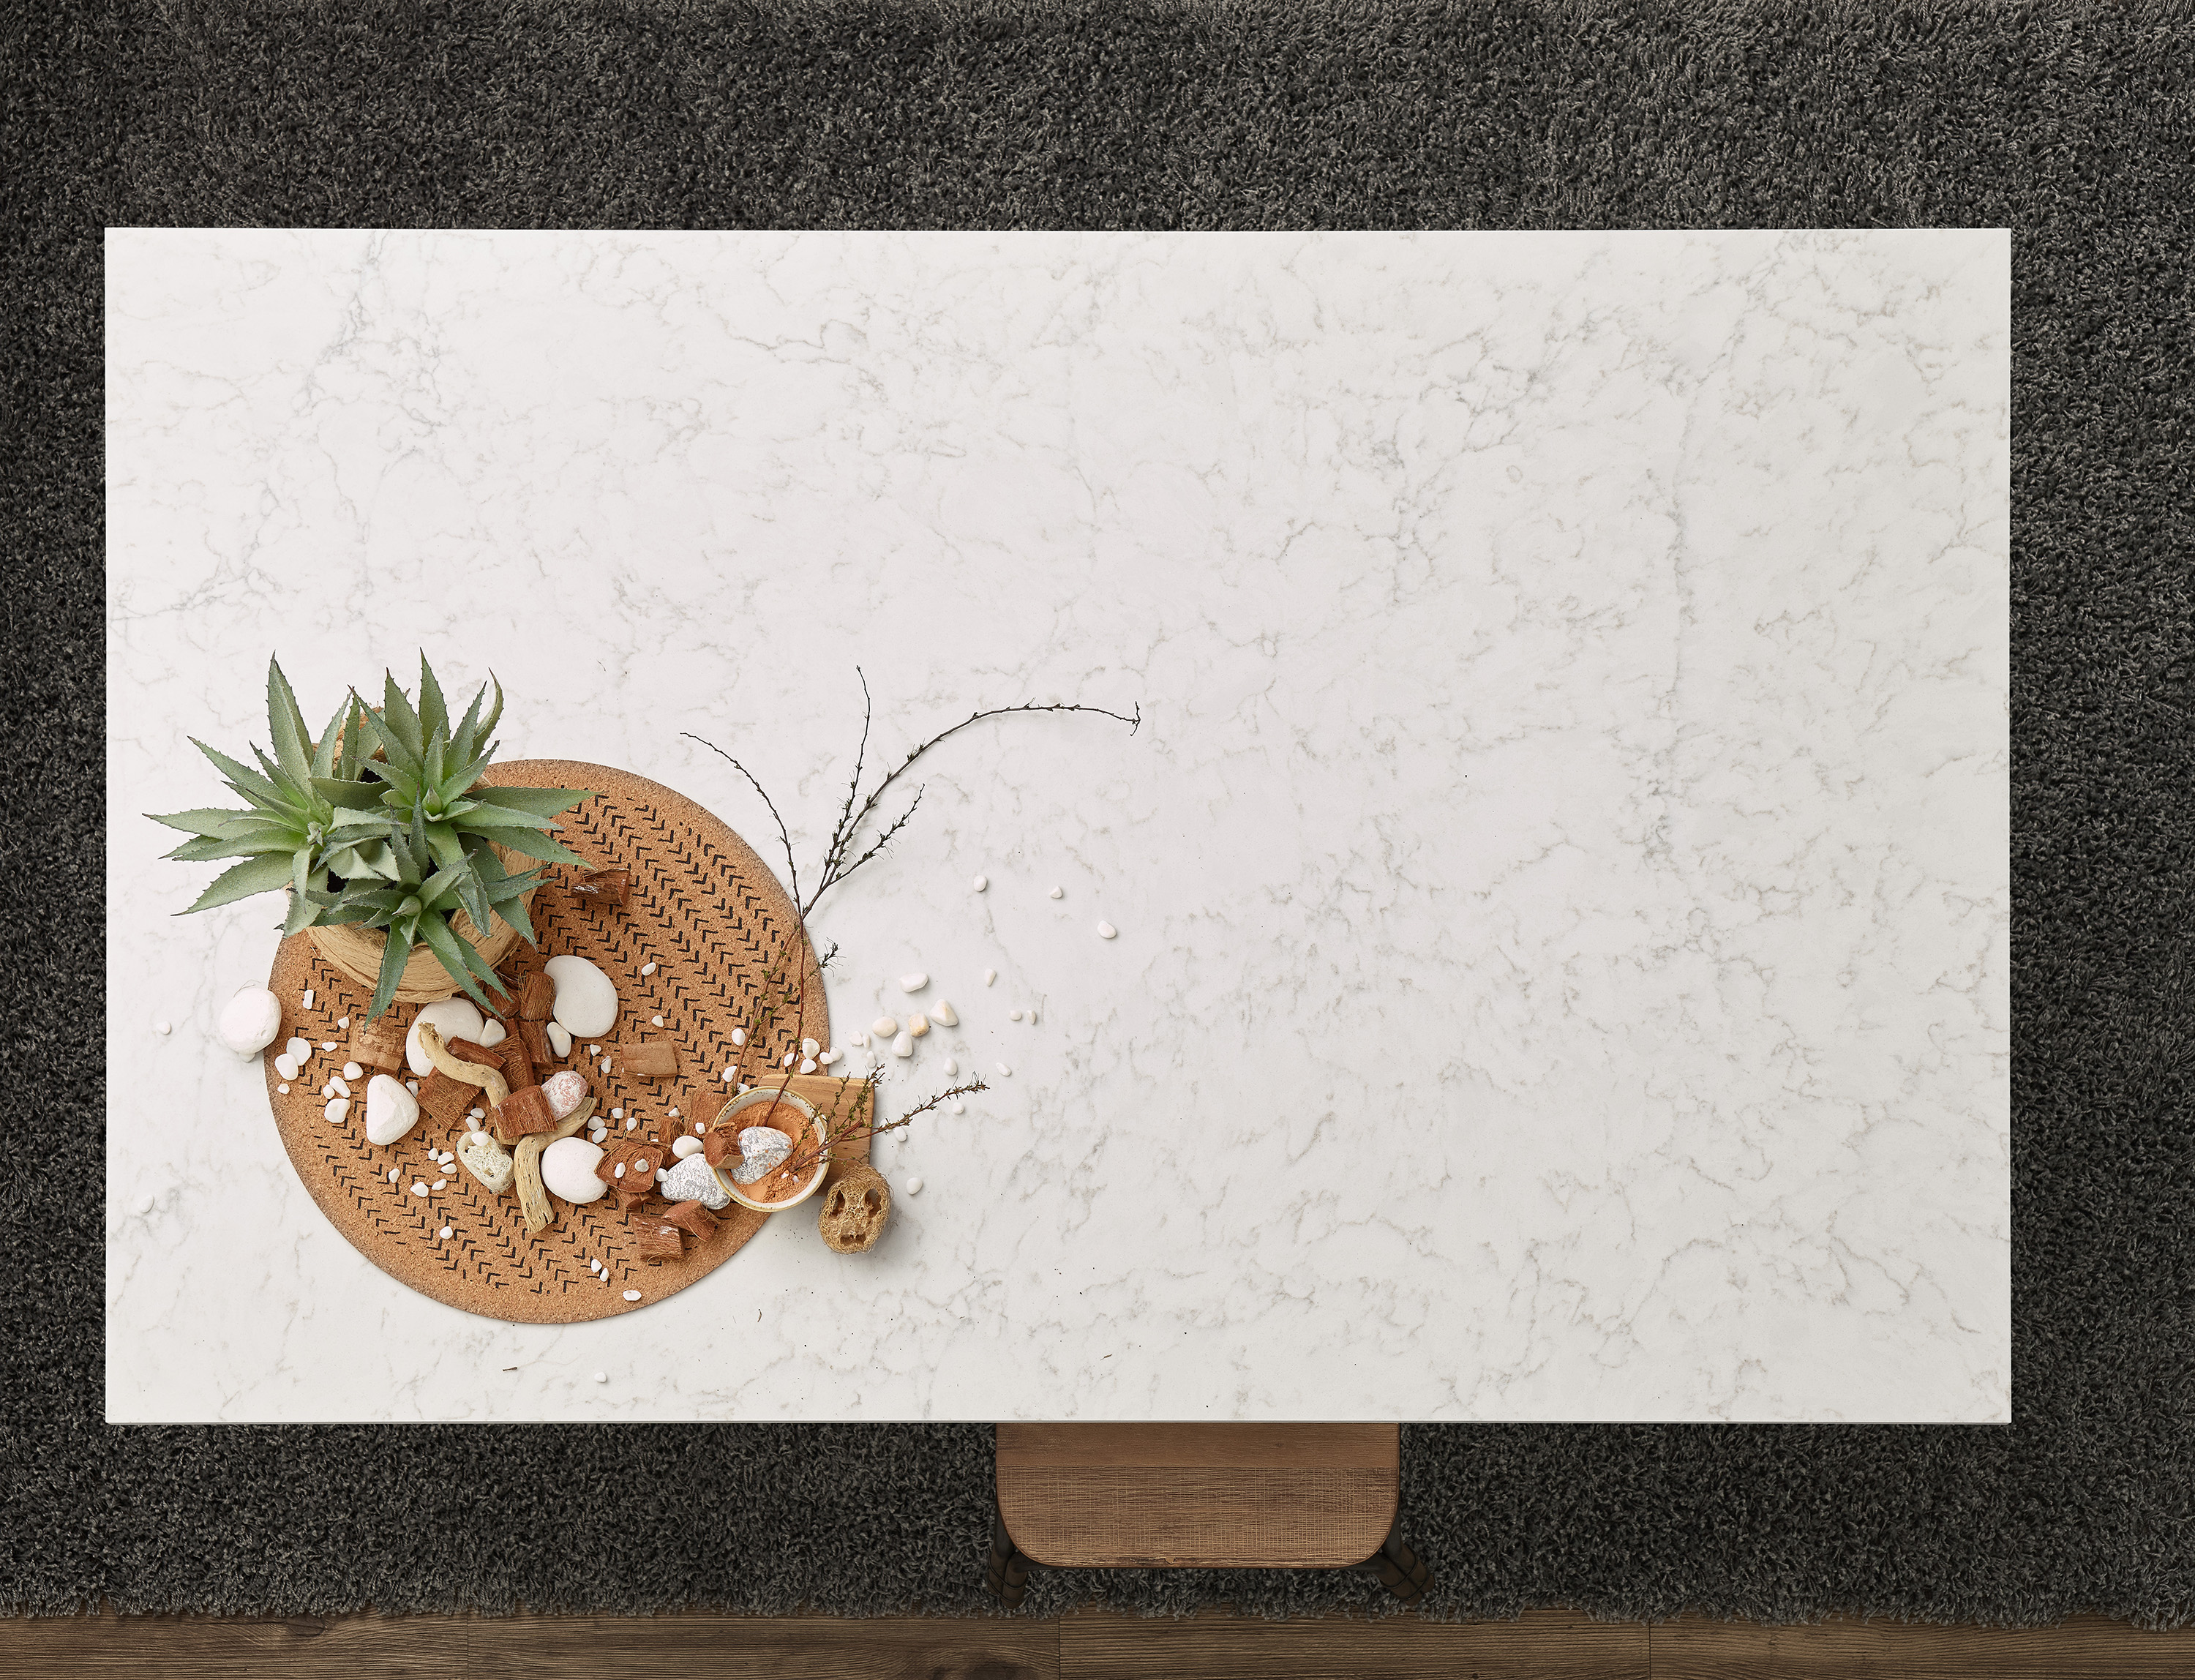 PVC Vinyl Marble Contact Paper for Countertops Self